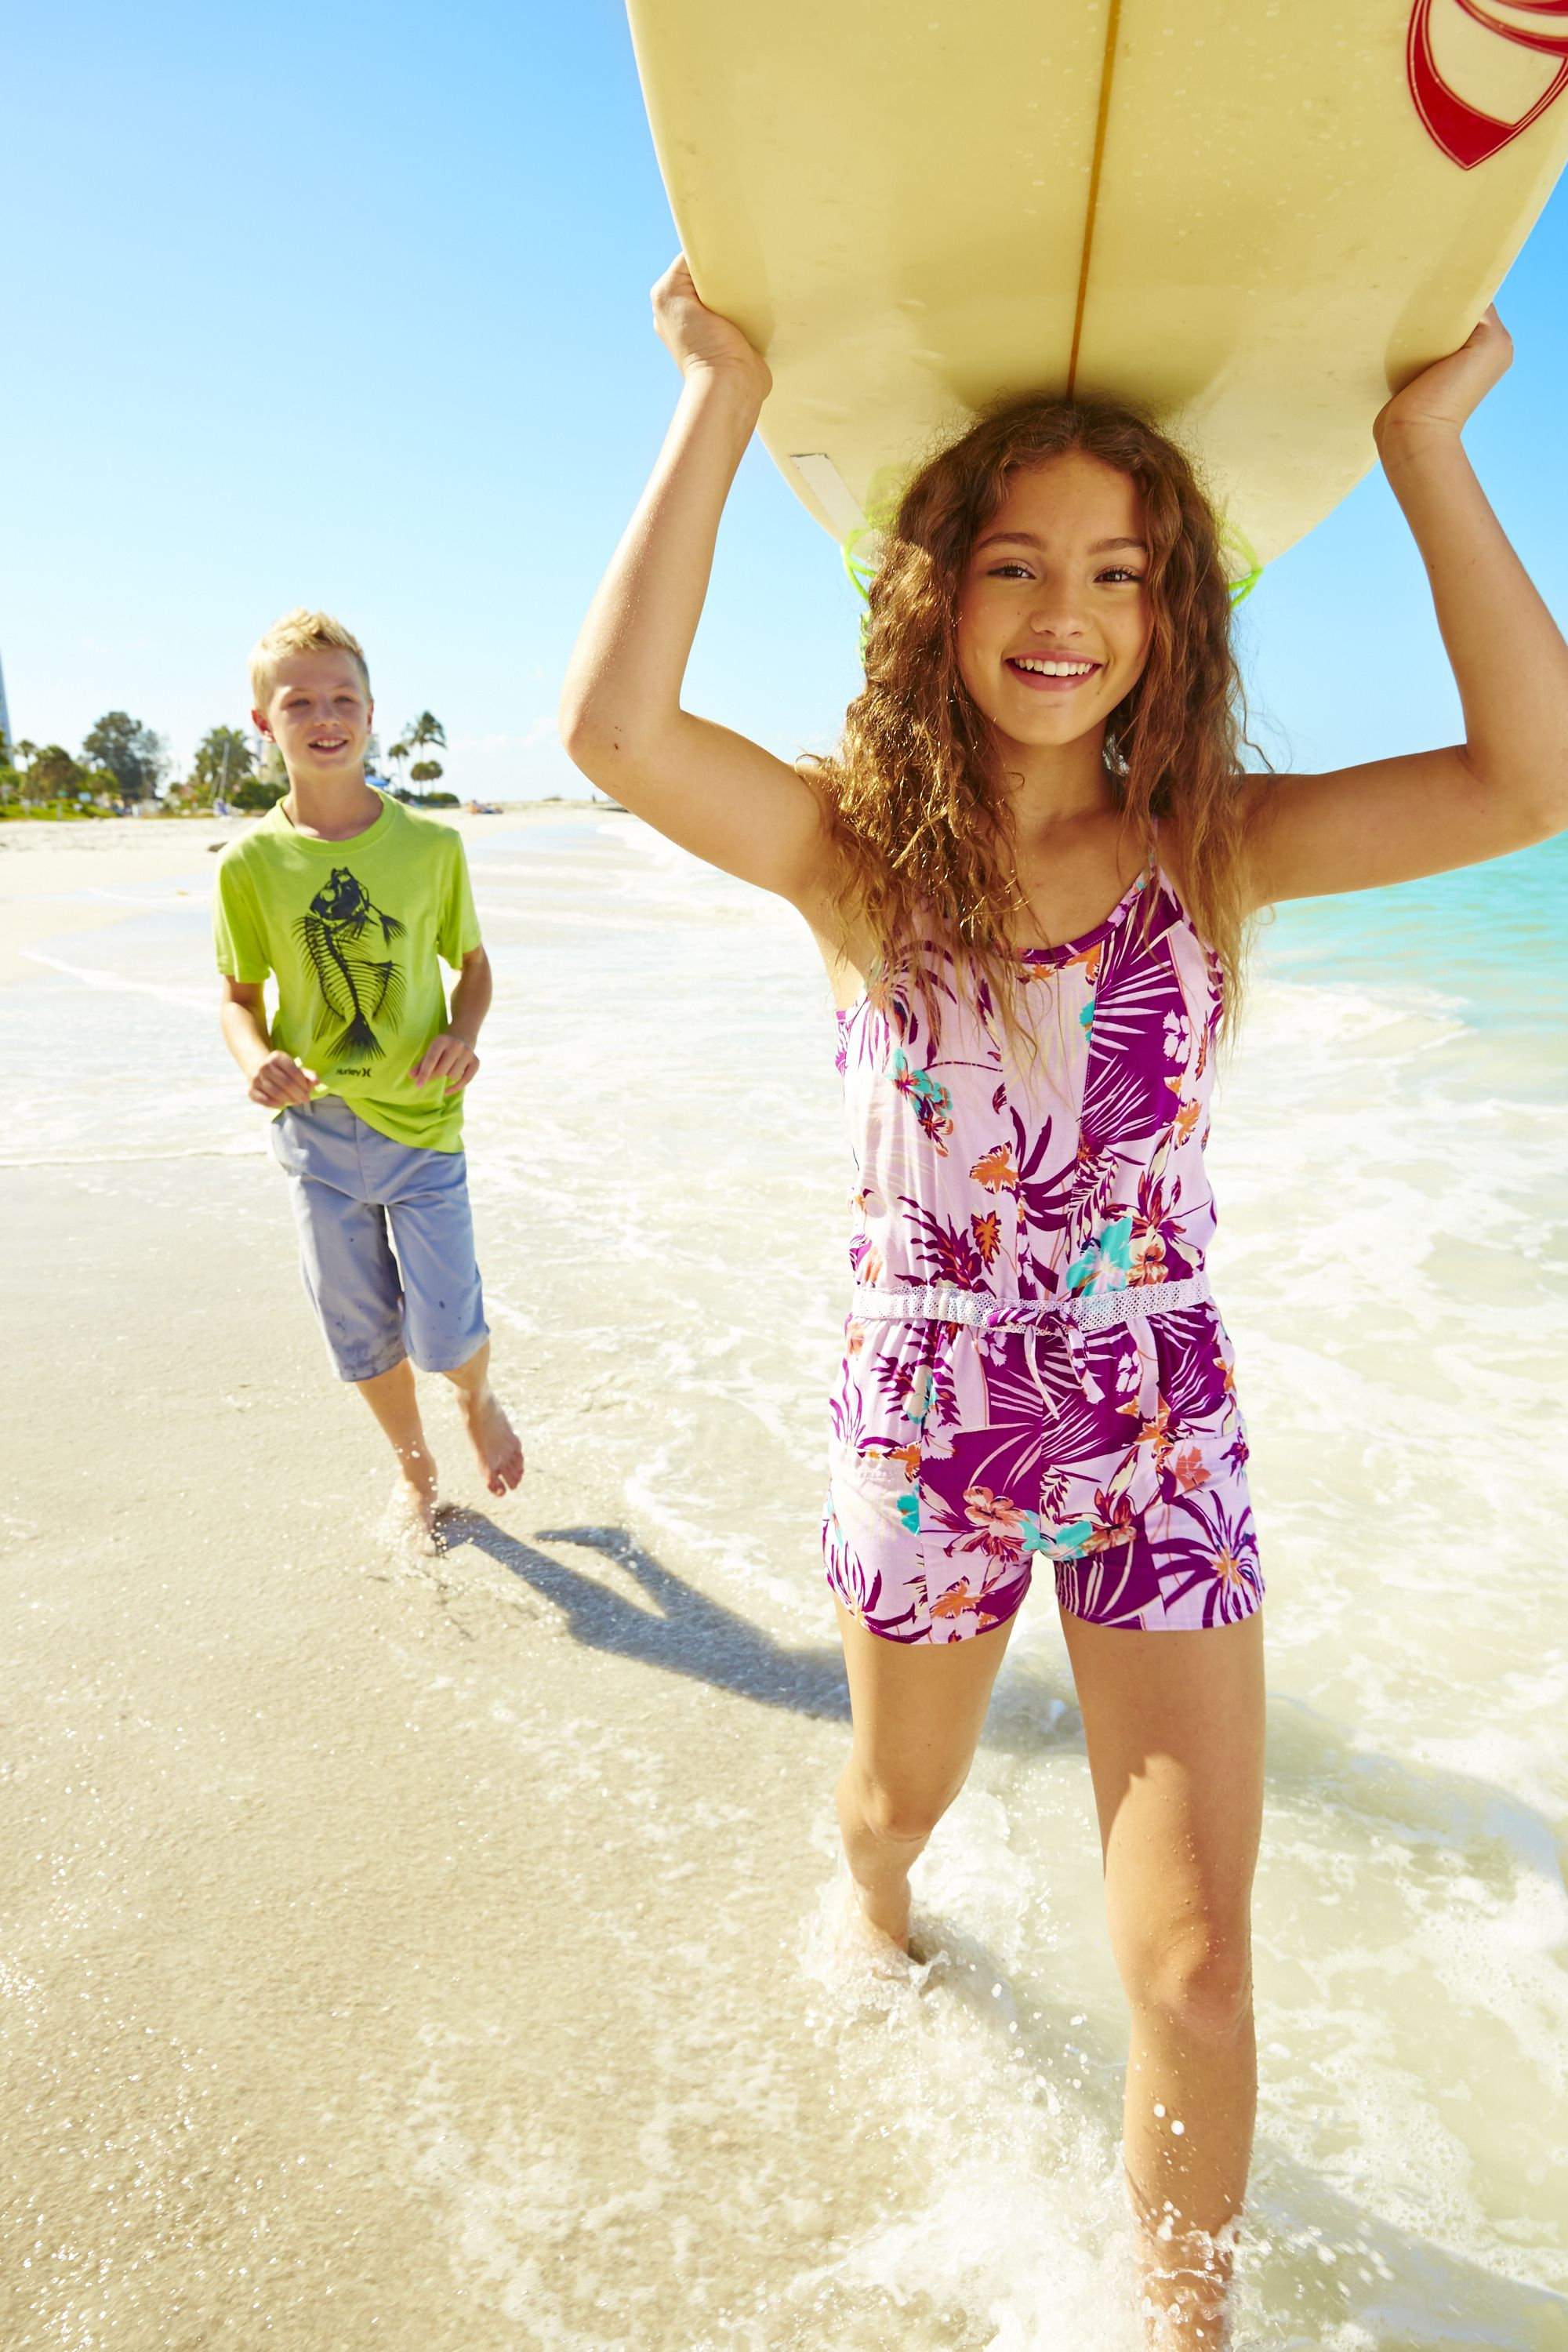 38f8524344 Shop kids swimwear at BeallsFlorida.com! We have bathing suits, rash  guards, board shorts, tankinis & more for the boy, girl, and toddler.